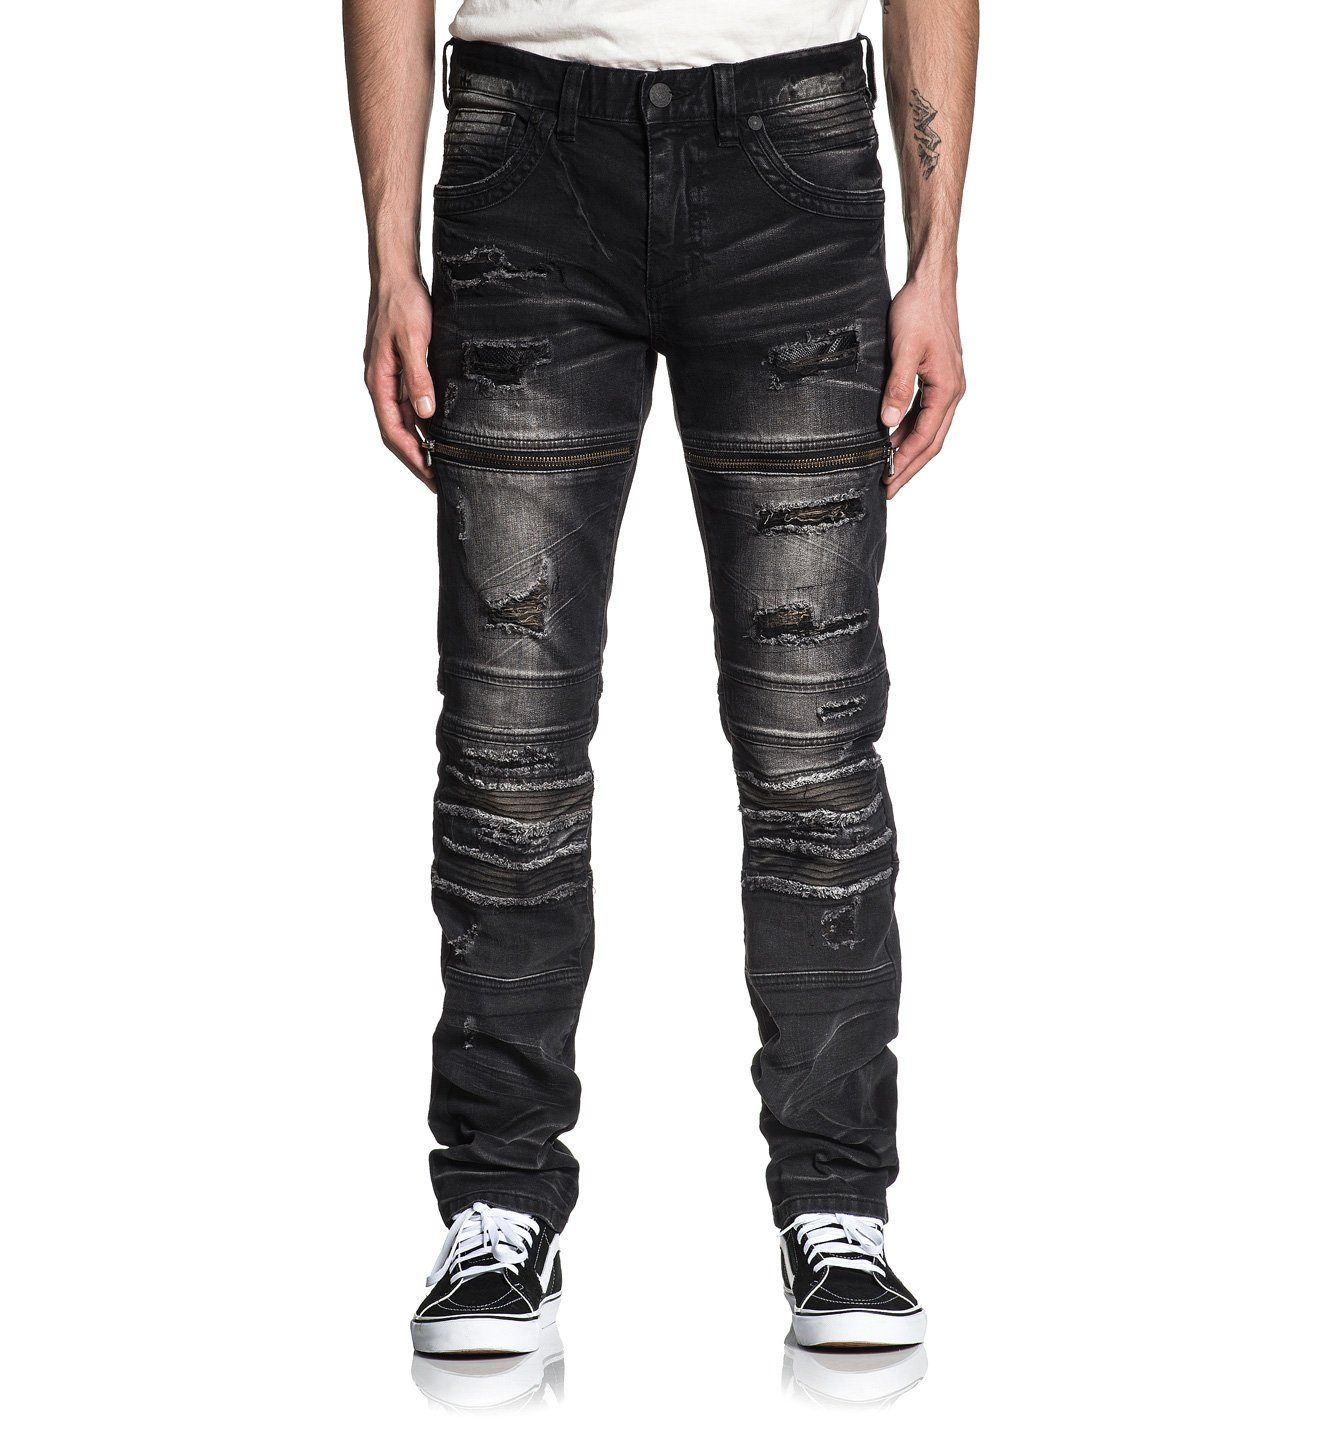 Gage Fallen Jasper - Mens Denim Bottoms - Affliction Clothing